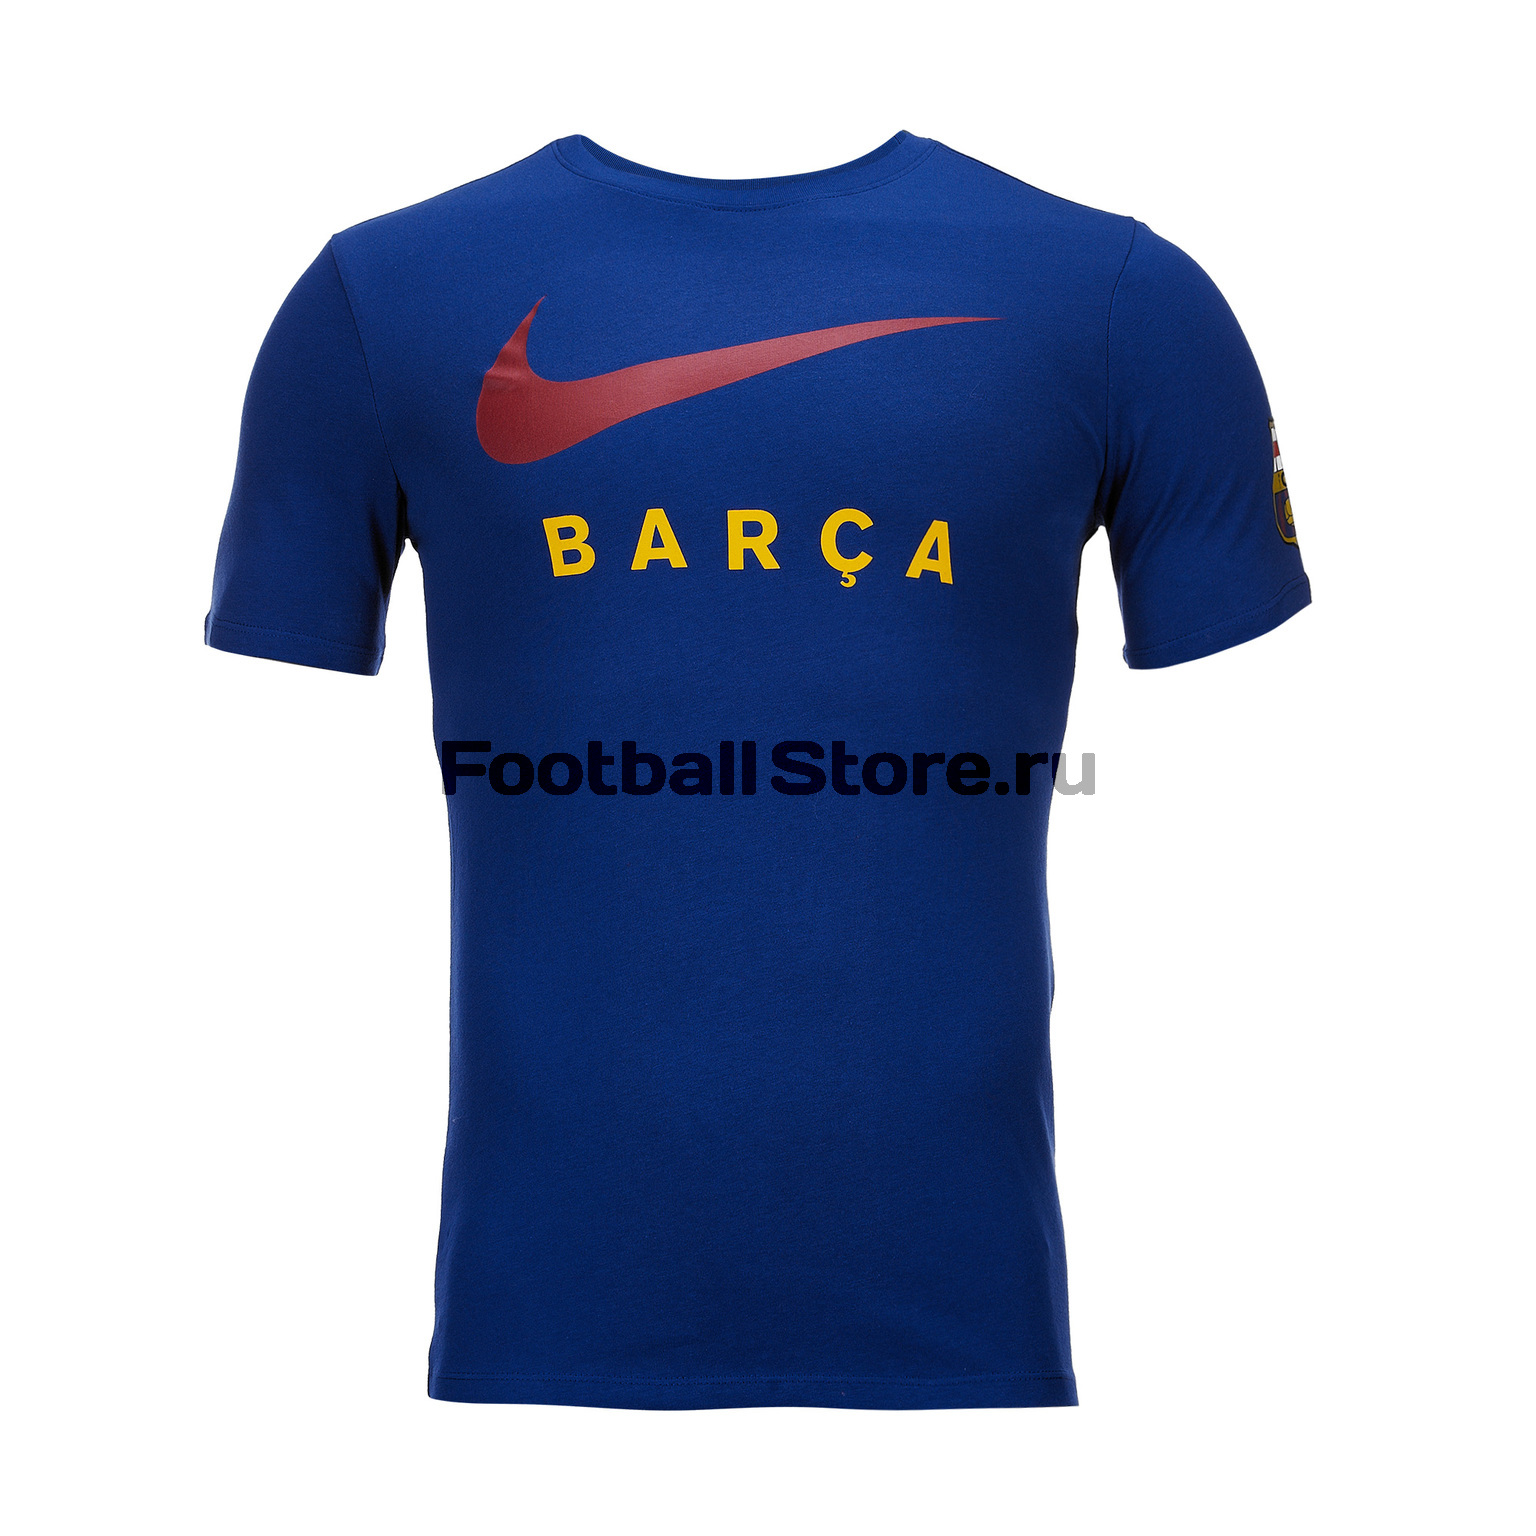 Футболка Nike Barcelona Tee Large AV5056-455 футболка nike футболка b nsw tee let there be air page 4